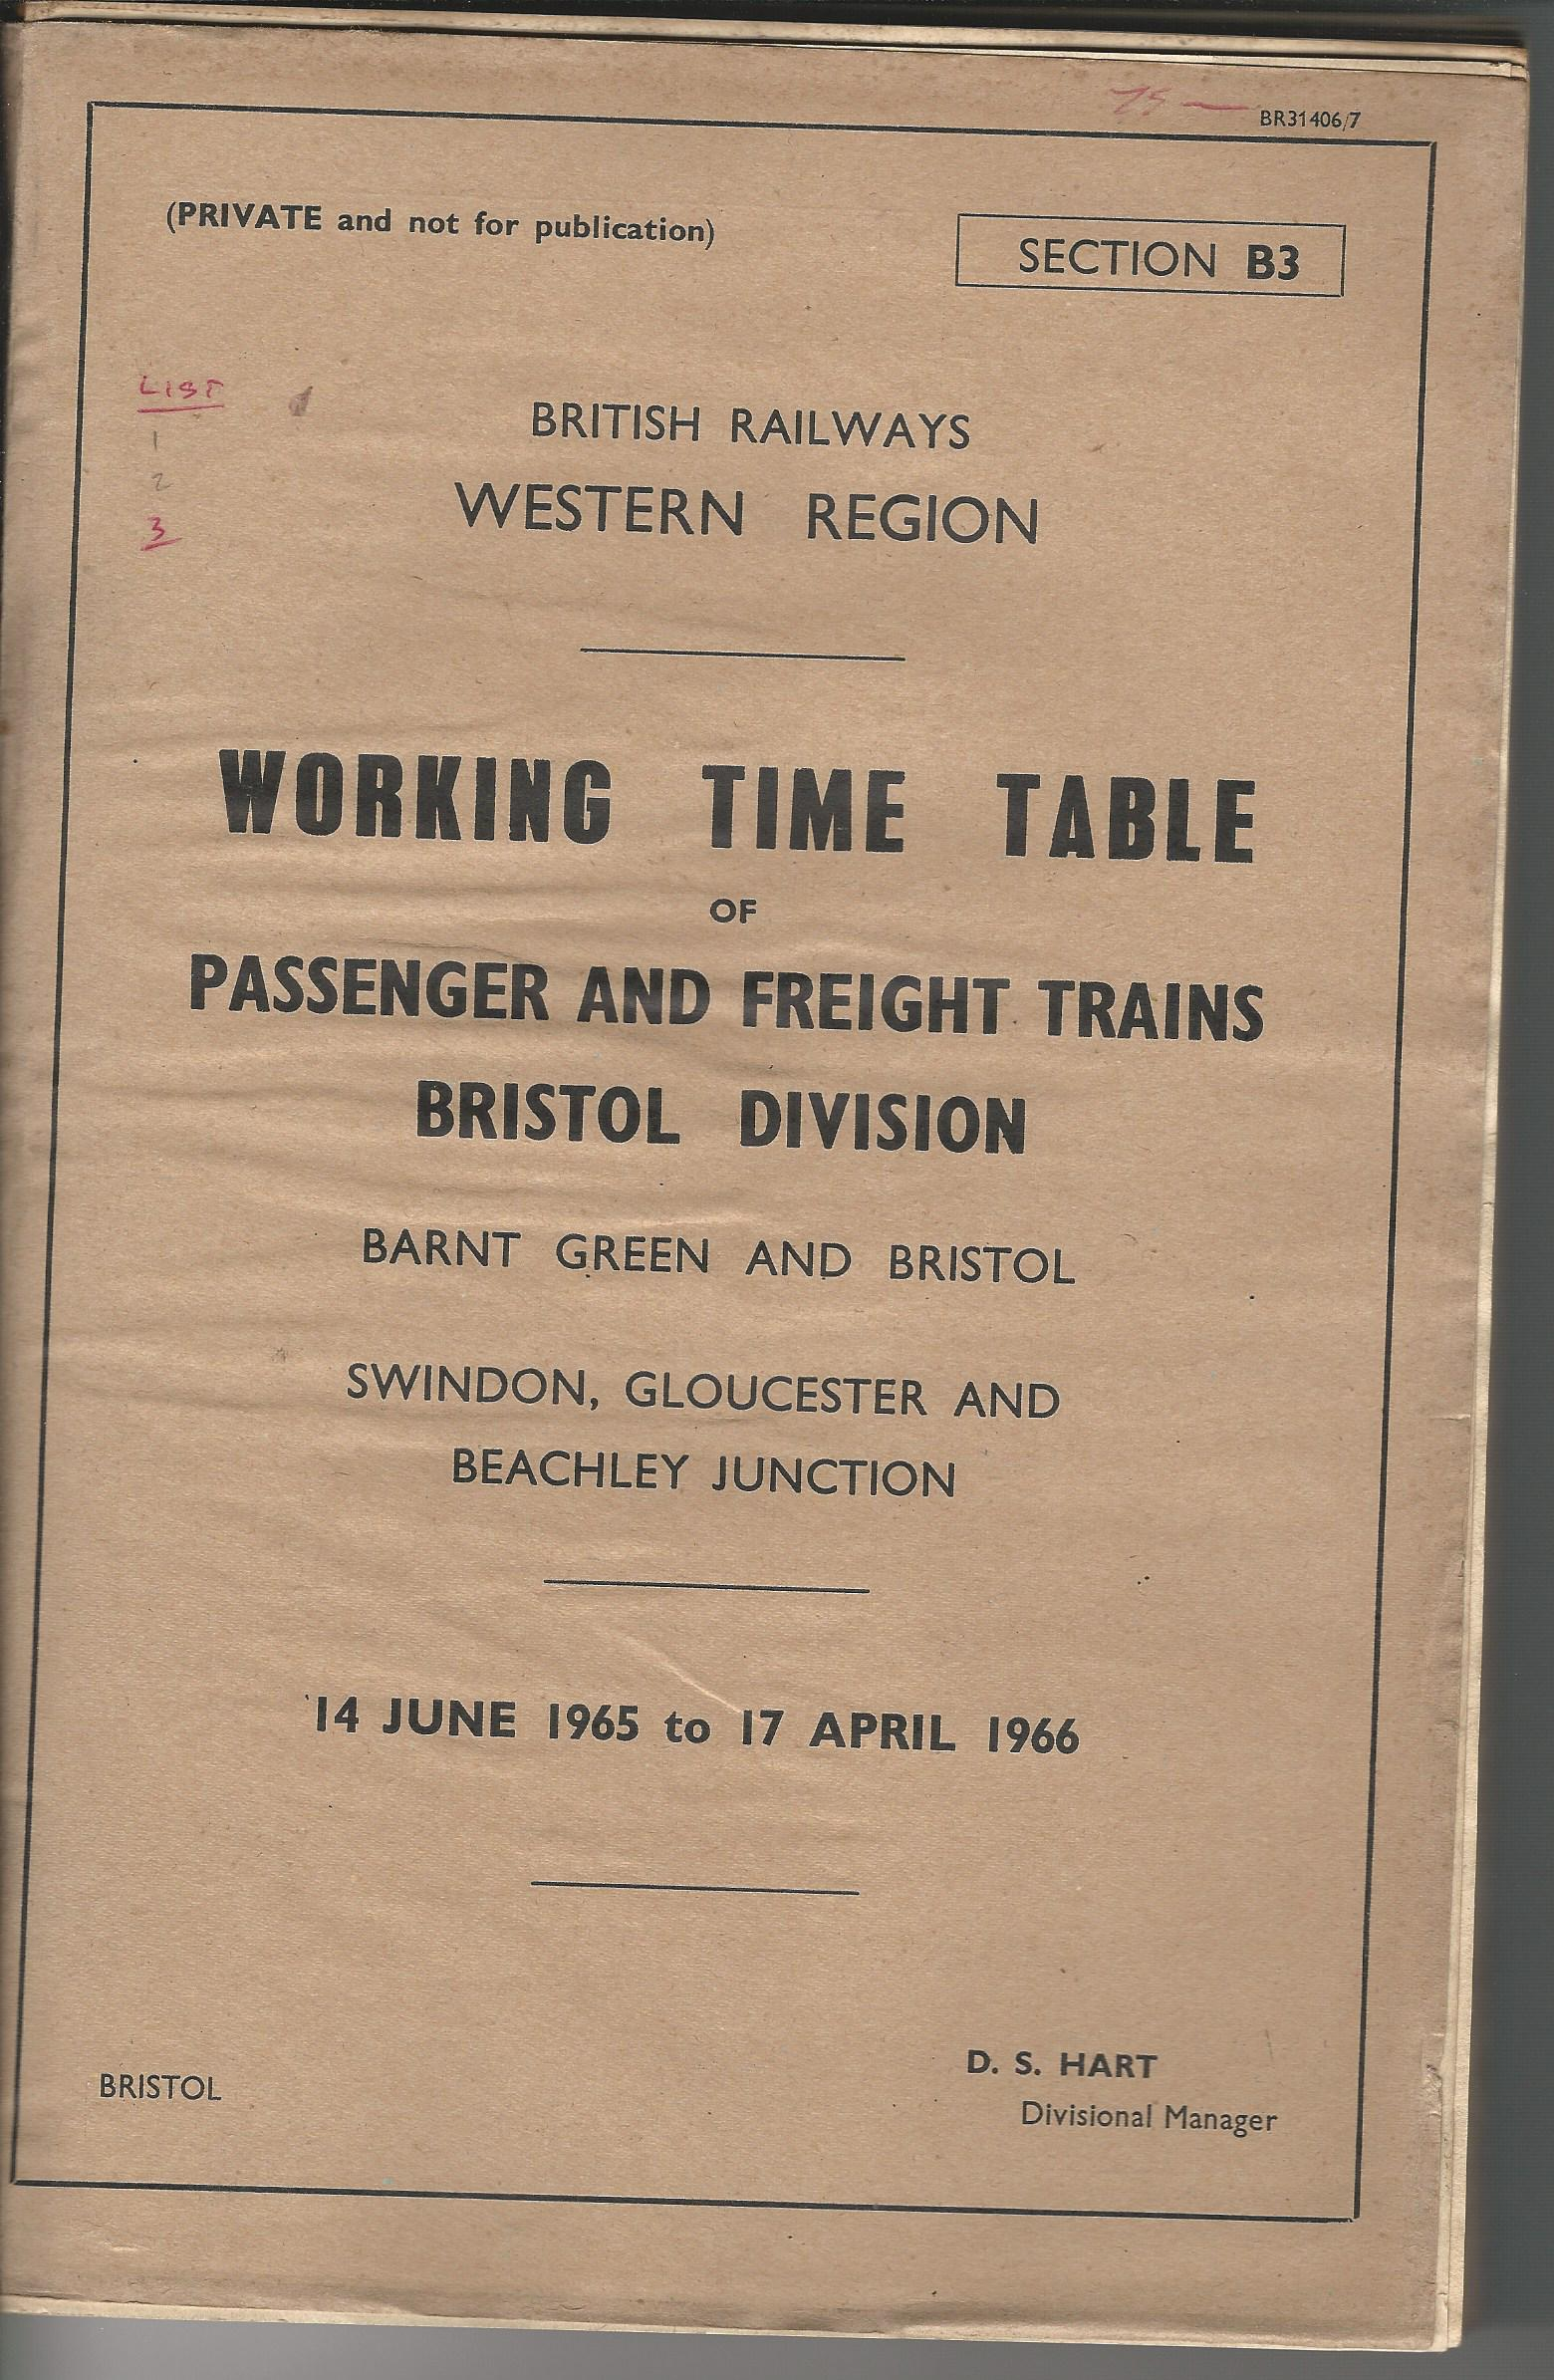 Image for British Railways Western Region: Working Time Table of Passenger and Freight Trains: Bristol Division: Barnt Green and Bristol, Swindon, Gloucester and Beachley JN.